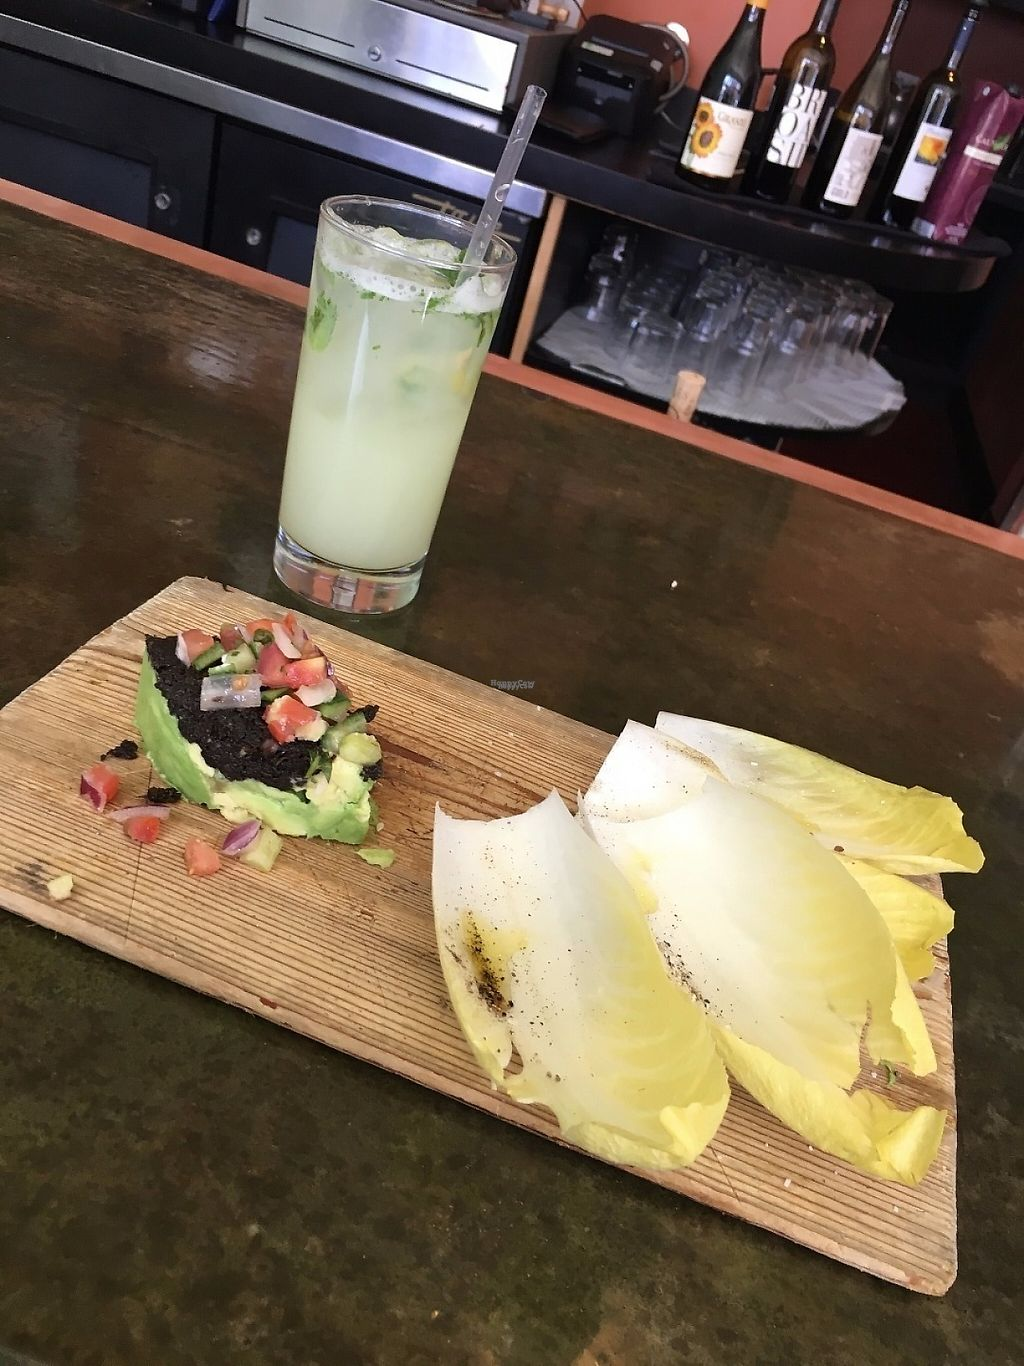 """Photo of Leaf Vegetarian Restaurant  by <a href=""""/members/profile/VeggieGastronaut"""">VeggieGastronaut</a> <br/>Avocado Tartare and Mint Lemonade <br/> April 5, 2017  - <a href='/contact/abuse/image/7376/245007'>Report</a>"""